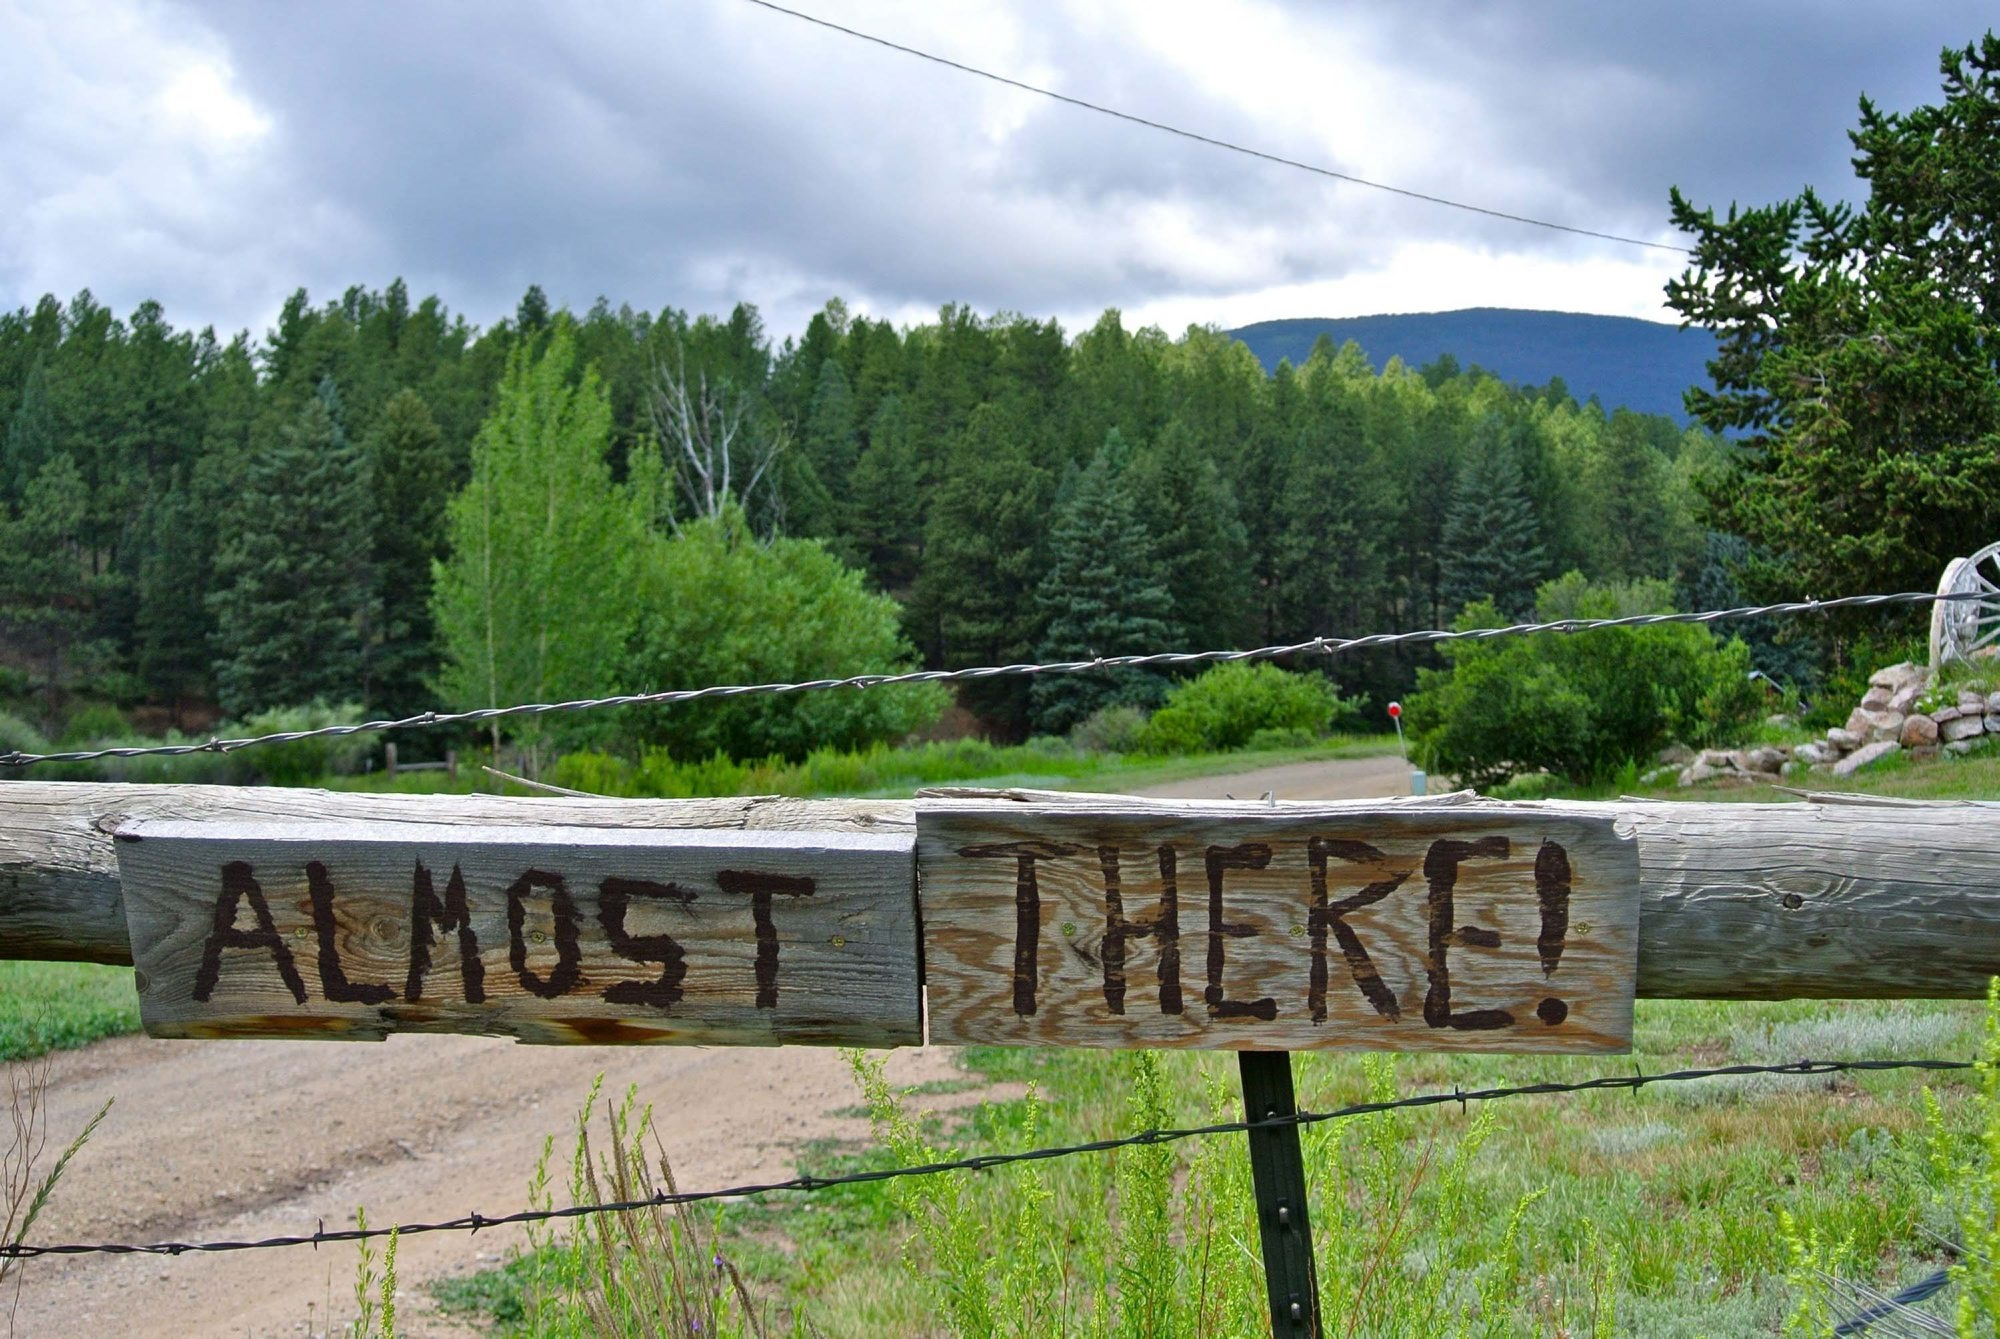 Kody Mutz posted this sign along the dirt road that leads to Comanche Creek Brewing Company in Eagle Nest, N.M. It's two miles from the highway, and he doesn't want people to think they're lost and turn back.